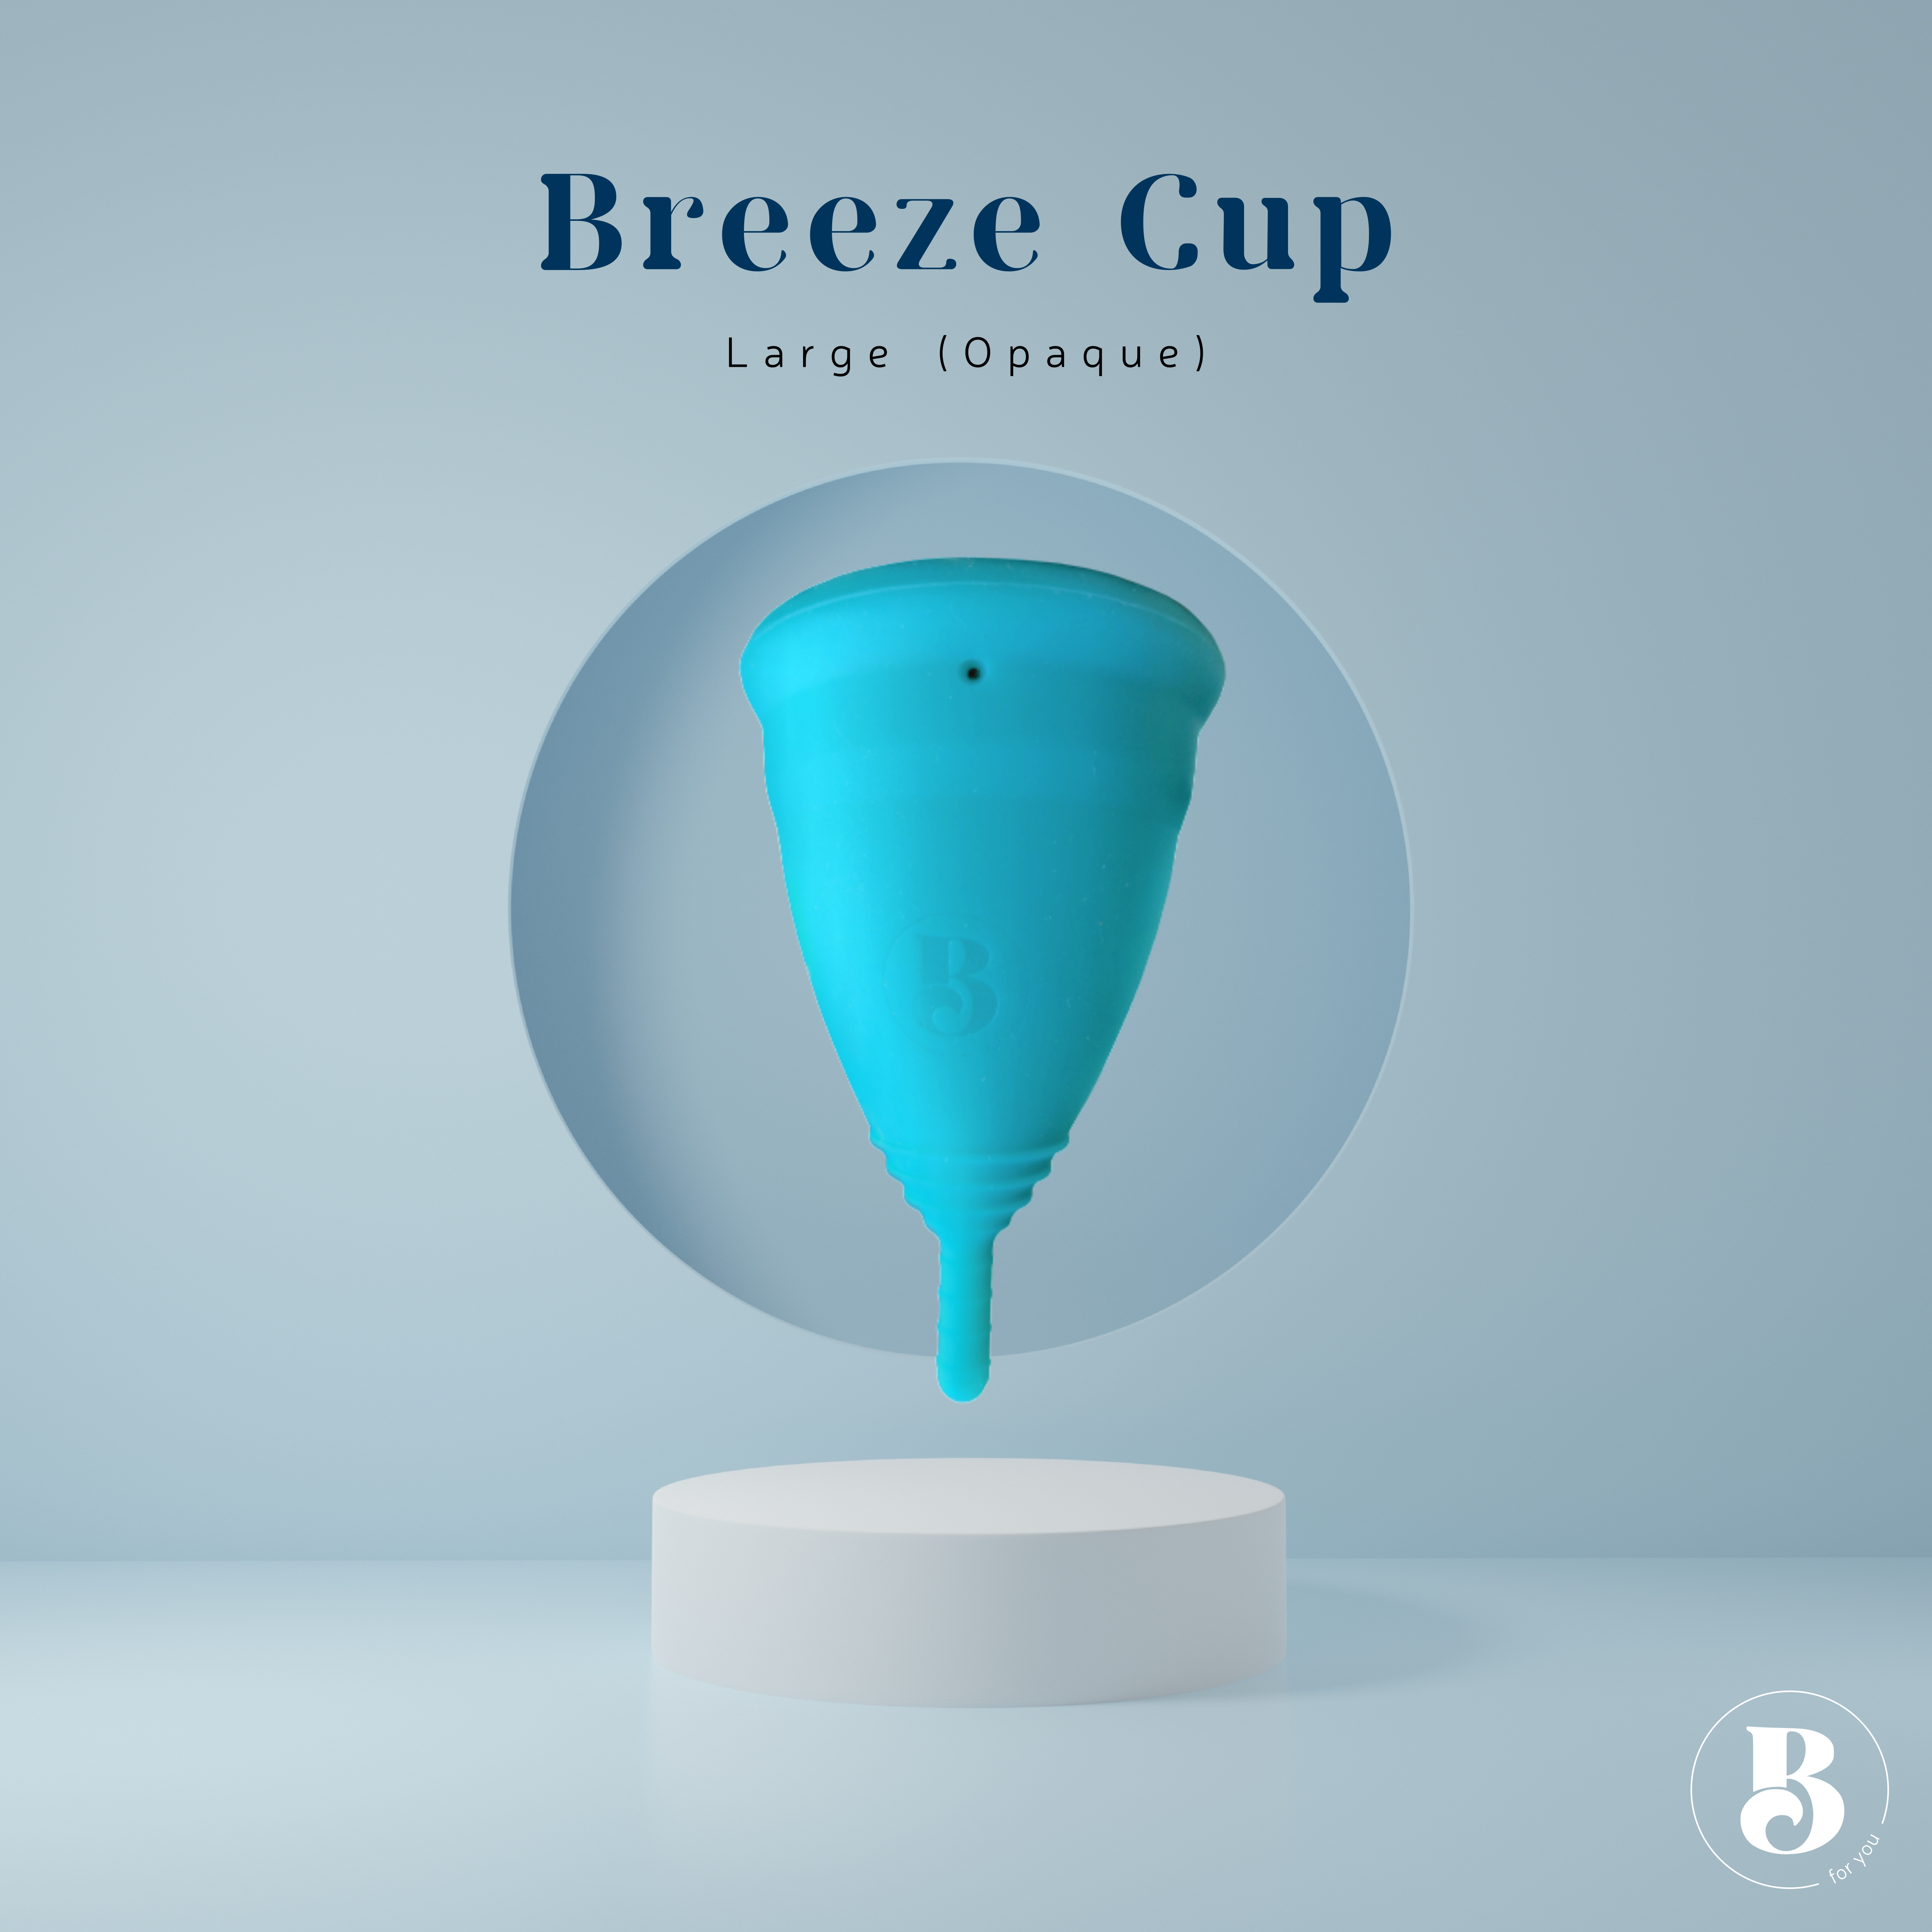 Breeze Cup Large Opaque